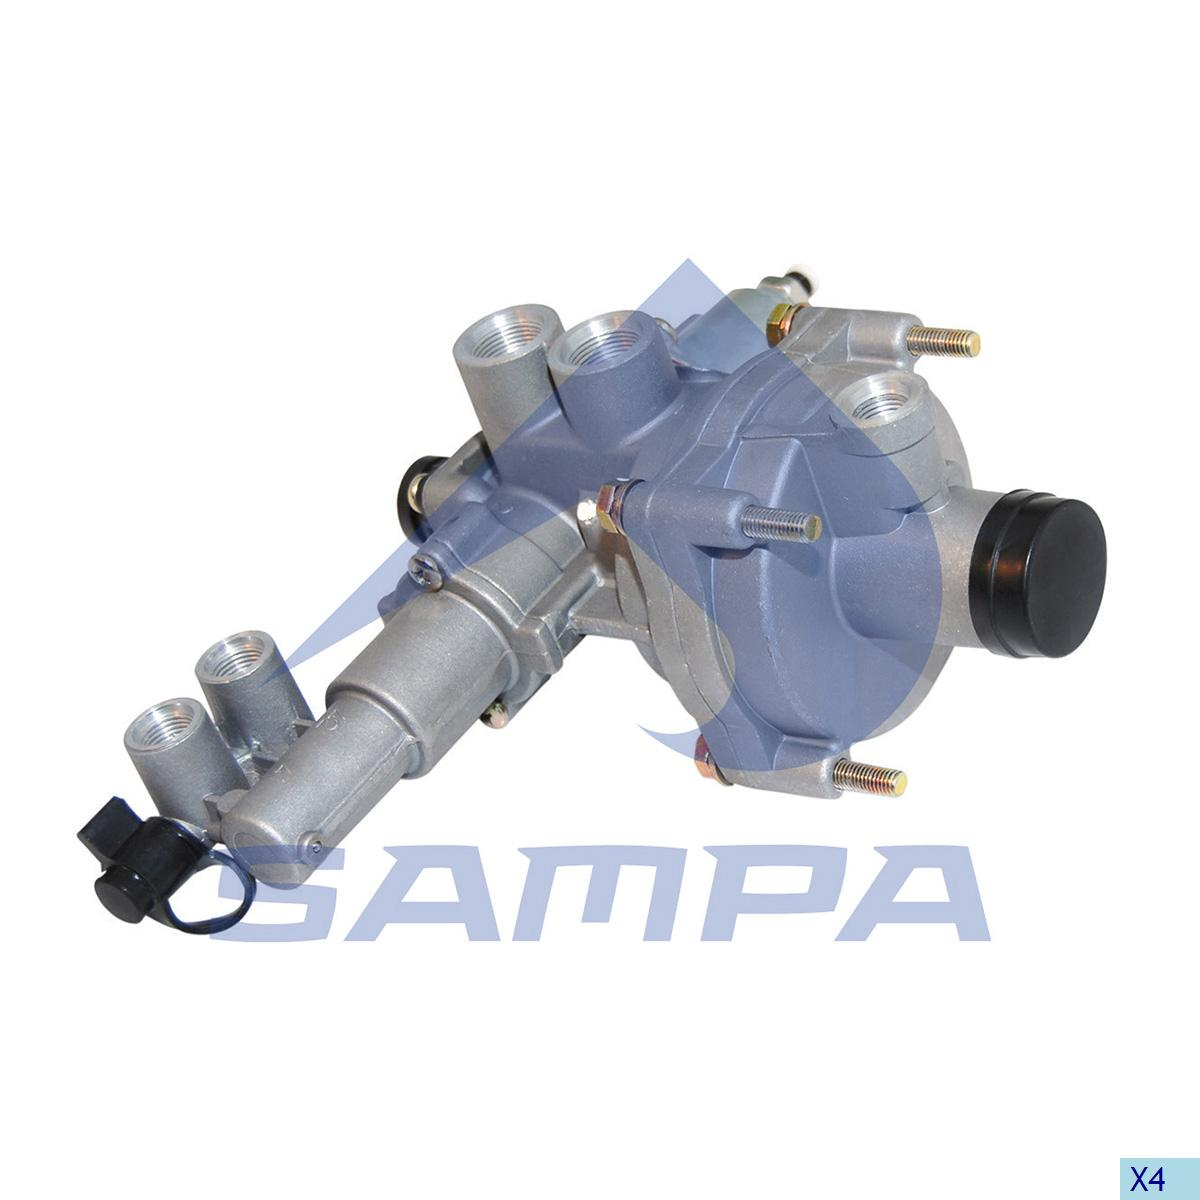 Brake Pressure Regulator, Daf, Compressed Air System